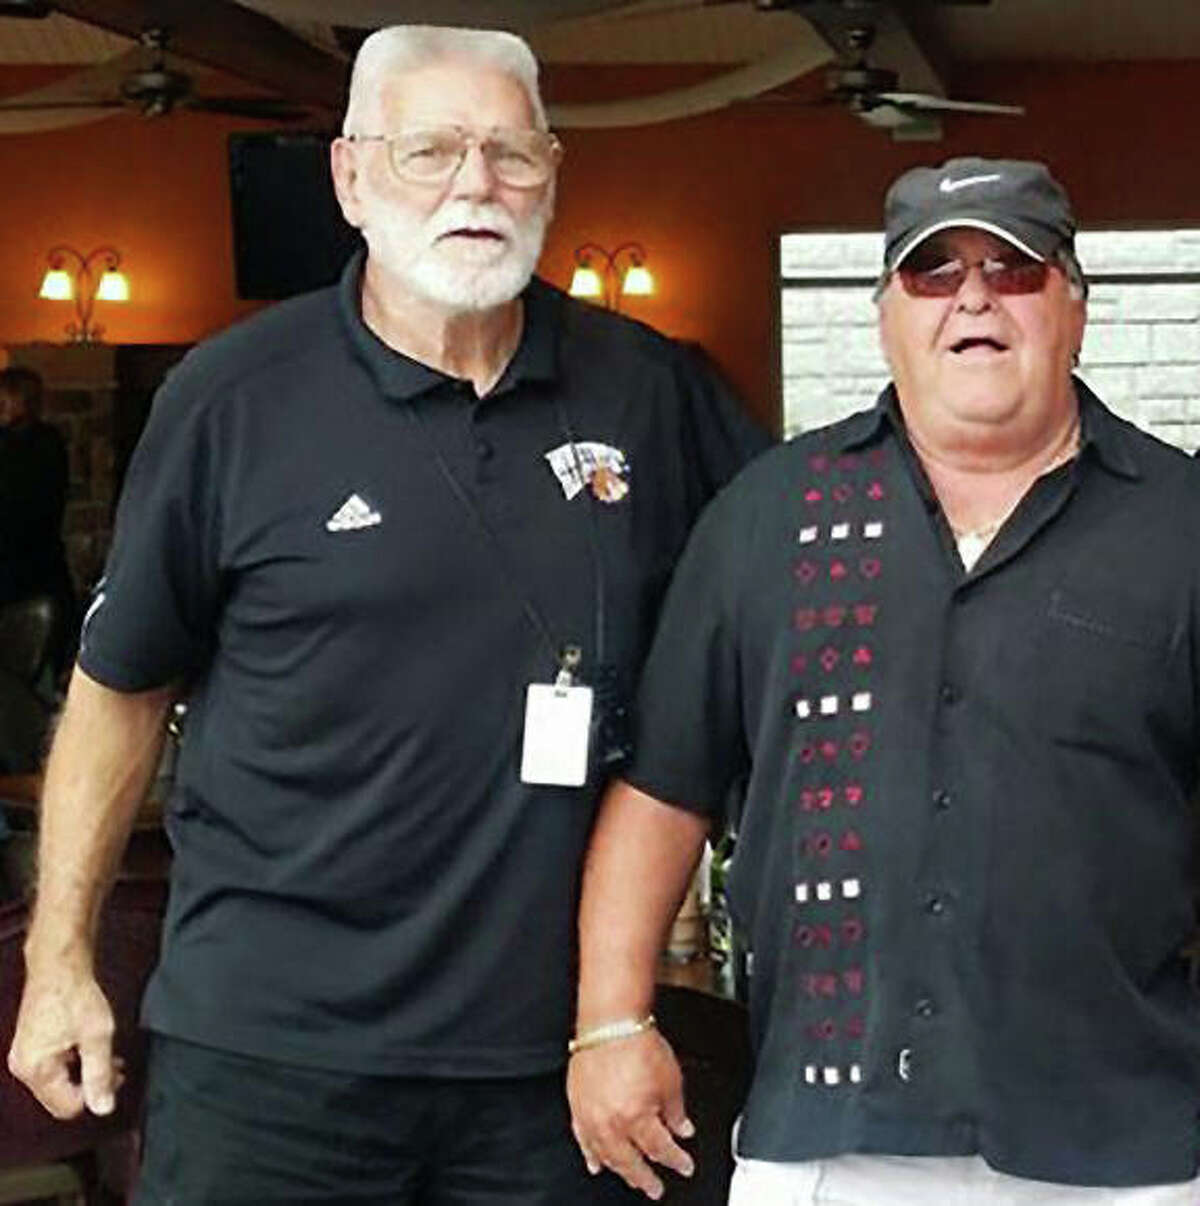 Billy Joe Brockhouse (left) and Tom Pile grew up together as cousins in Winchester. Their life-long relationship grew into much more as coaches and friends before Brockhouse passed away Thursday at age 76 back in his hometown of Winchester.